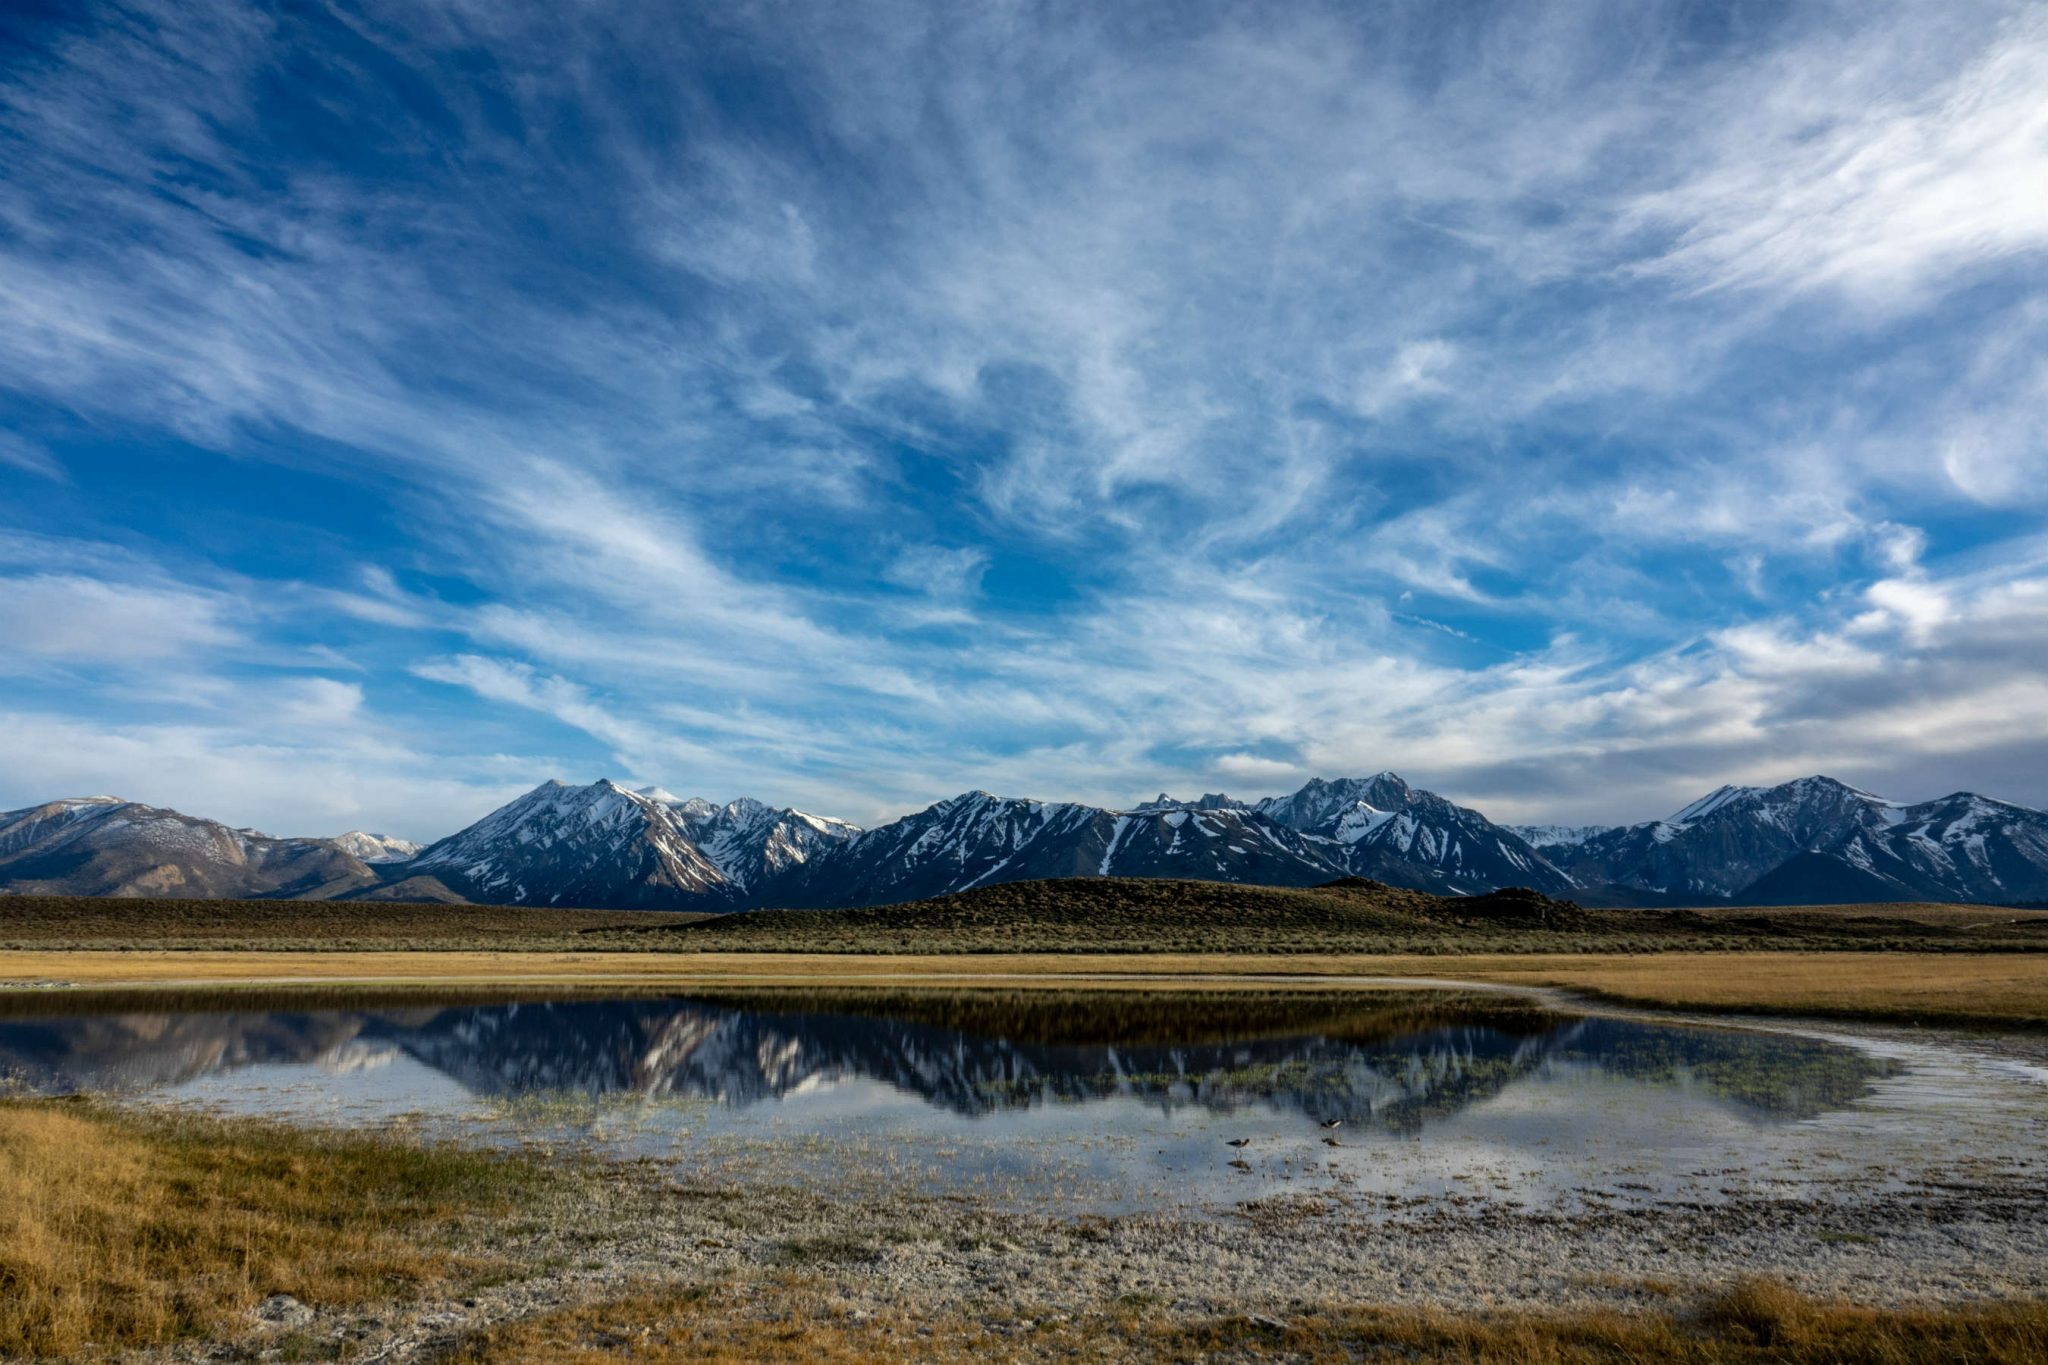 The Best Adventure Travel Compact camera - Sony RX10 III - Eastern Sierras